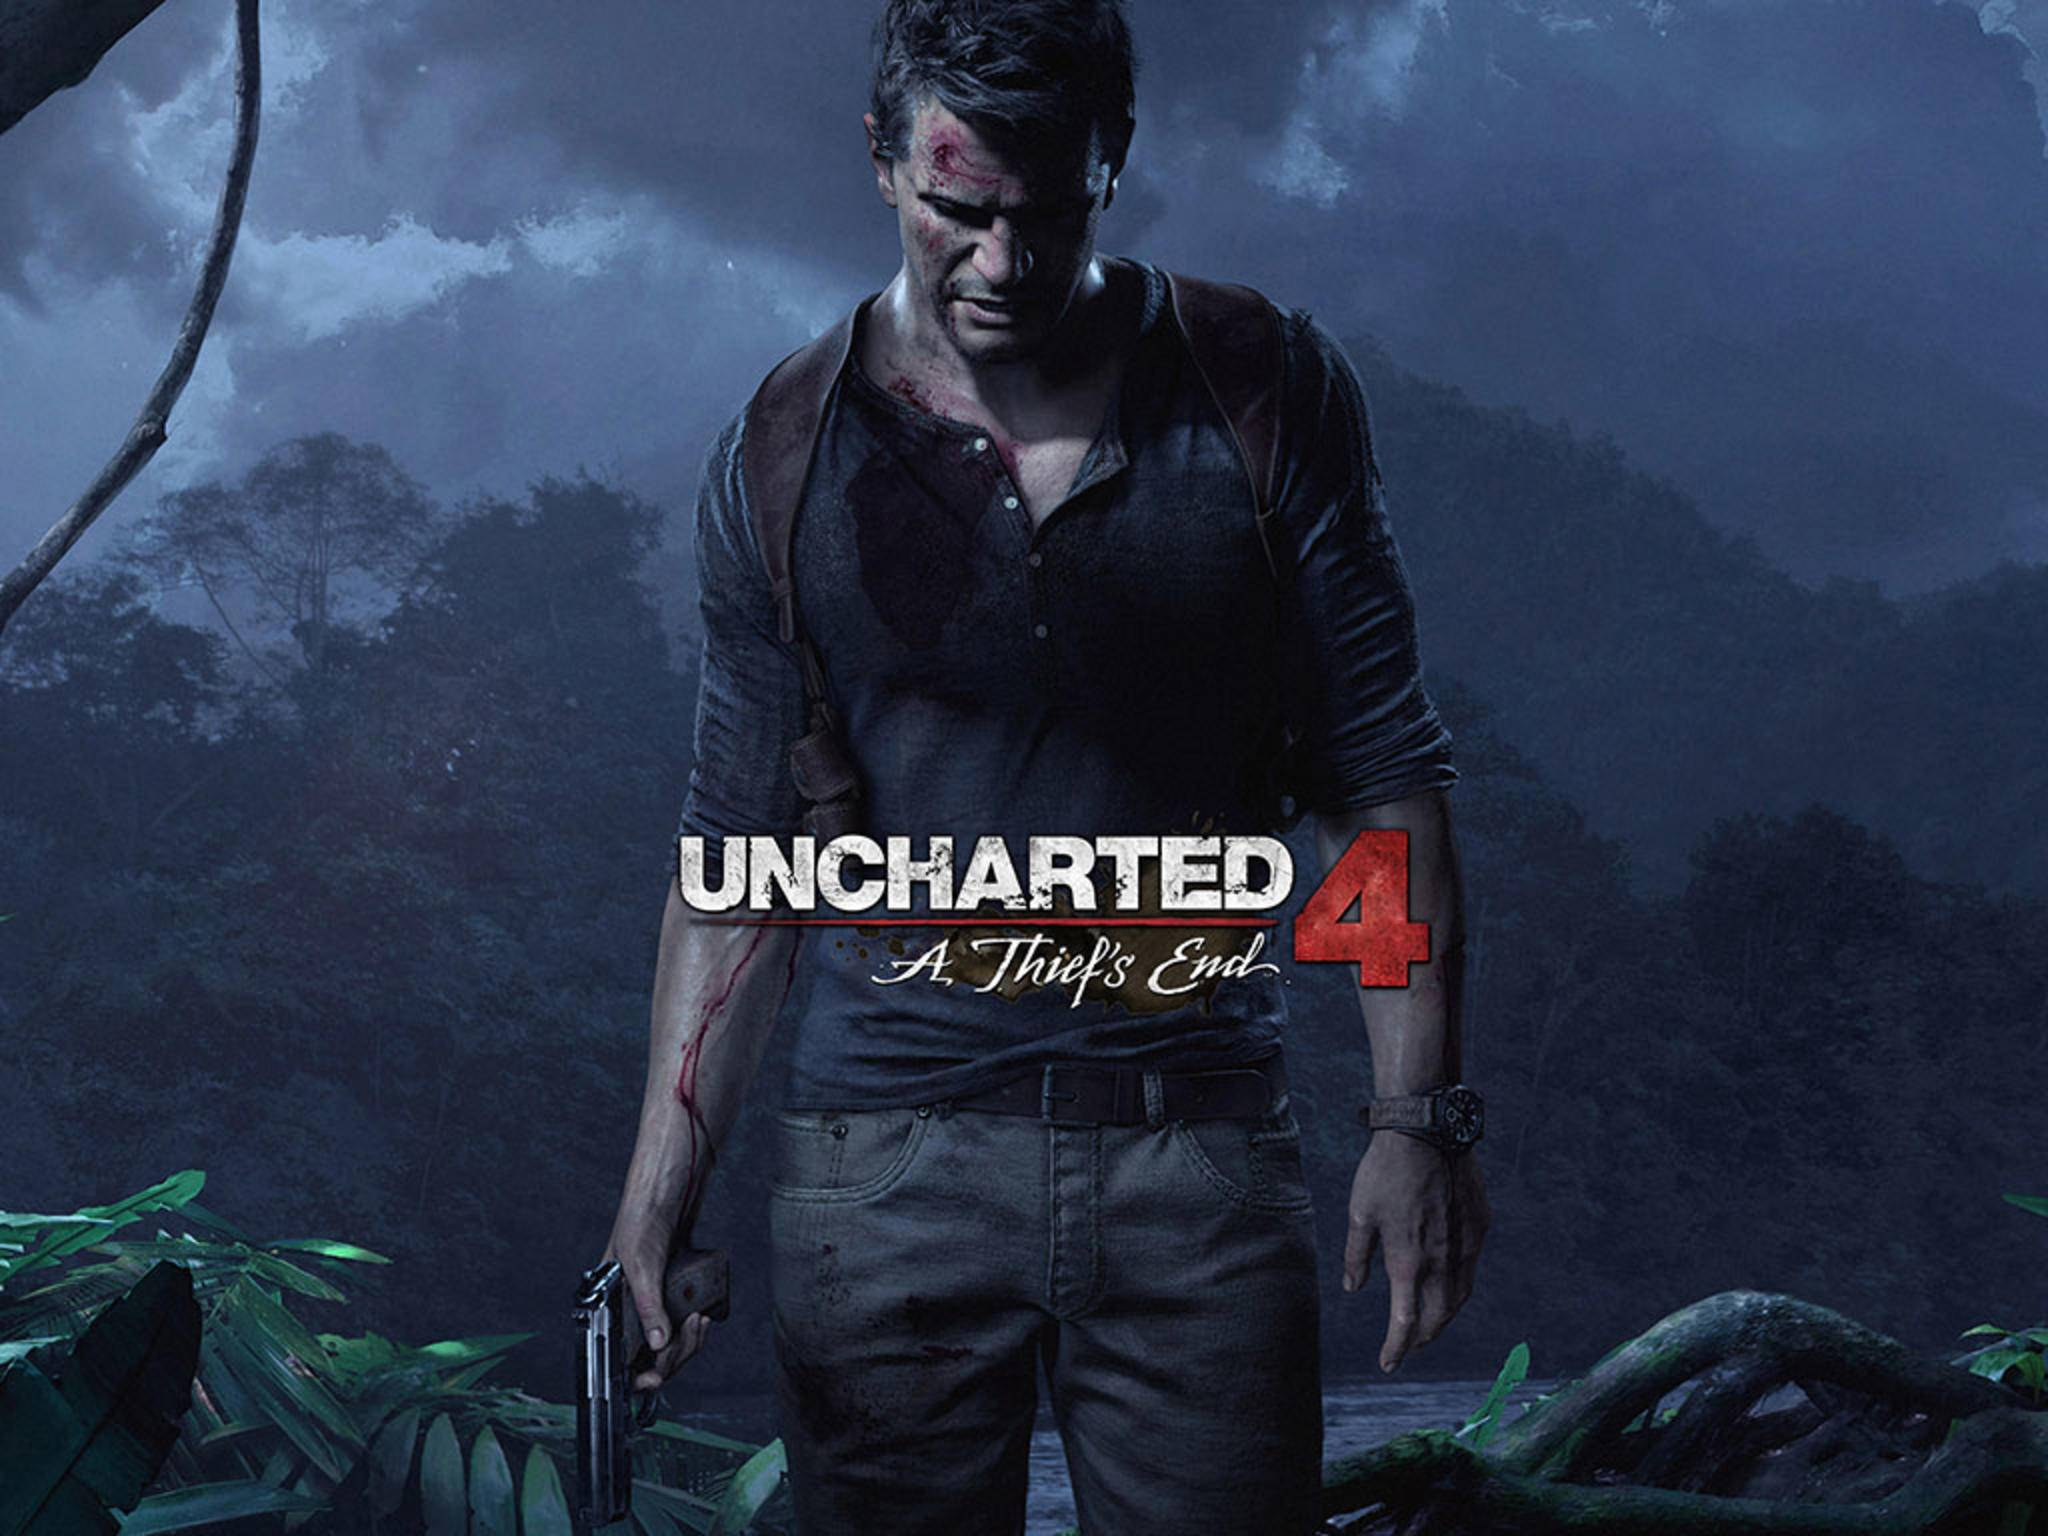 """Uncharted 4"" erscheint am 27. April."